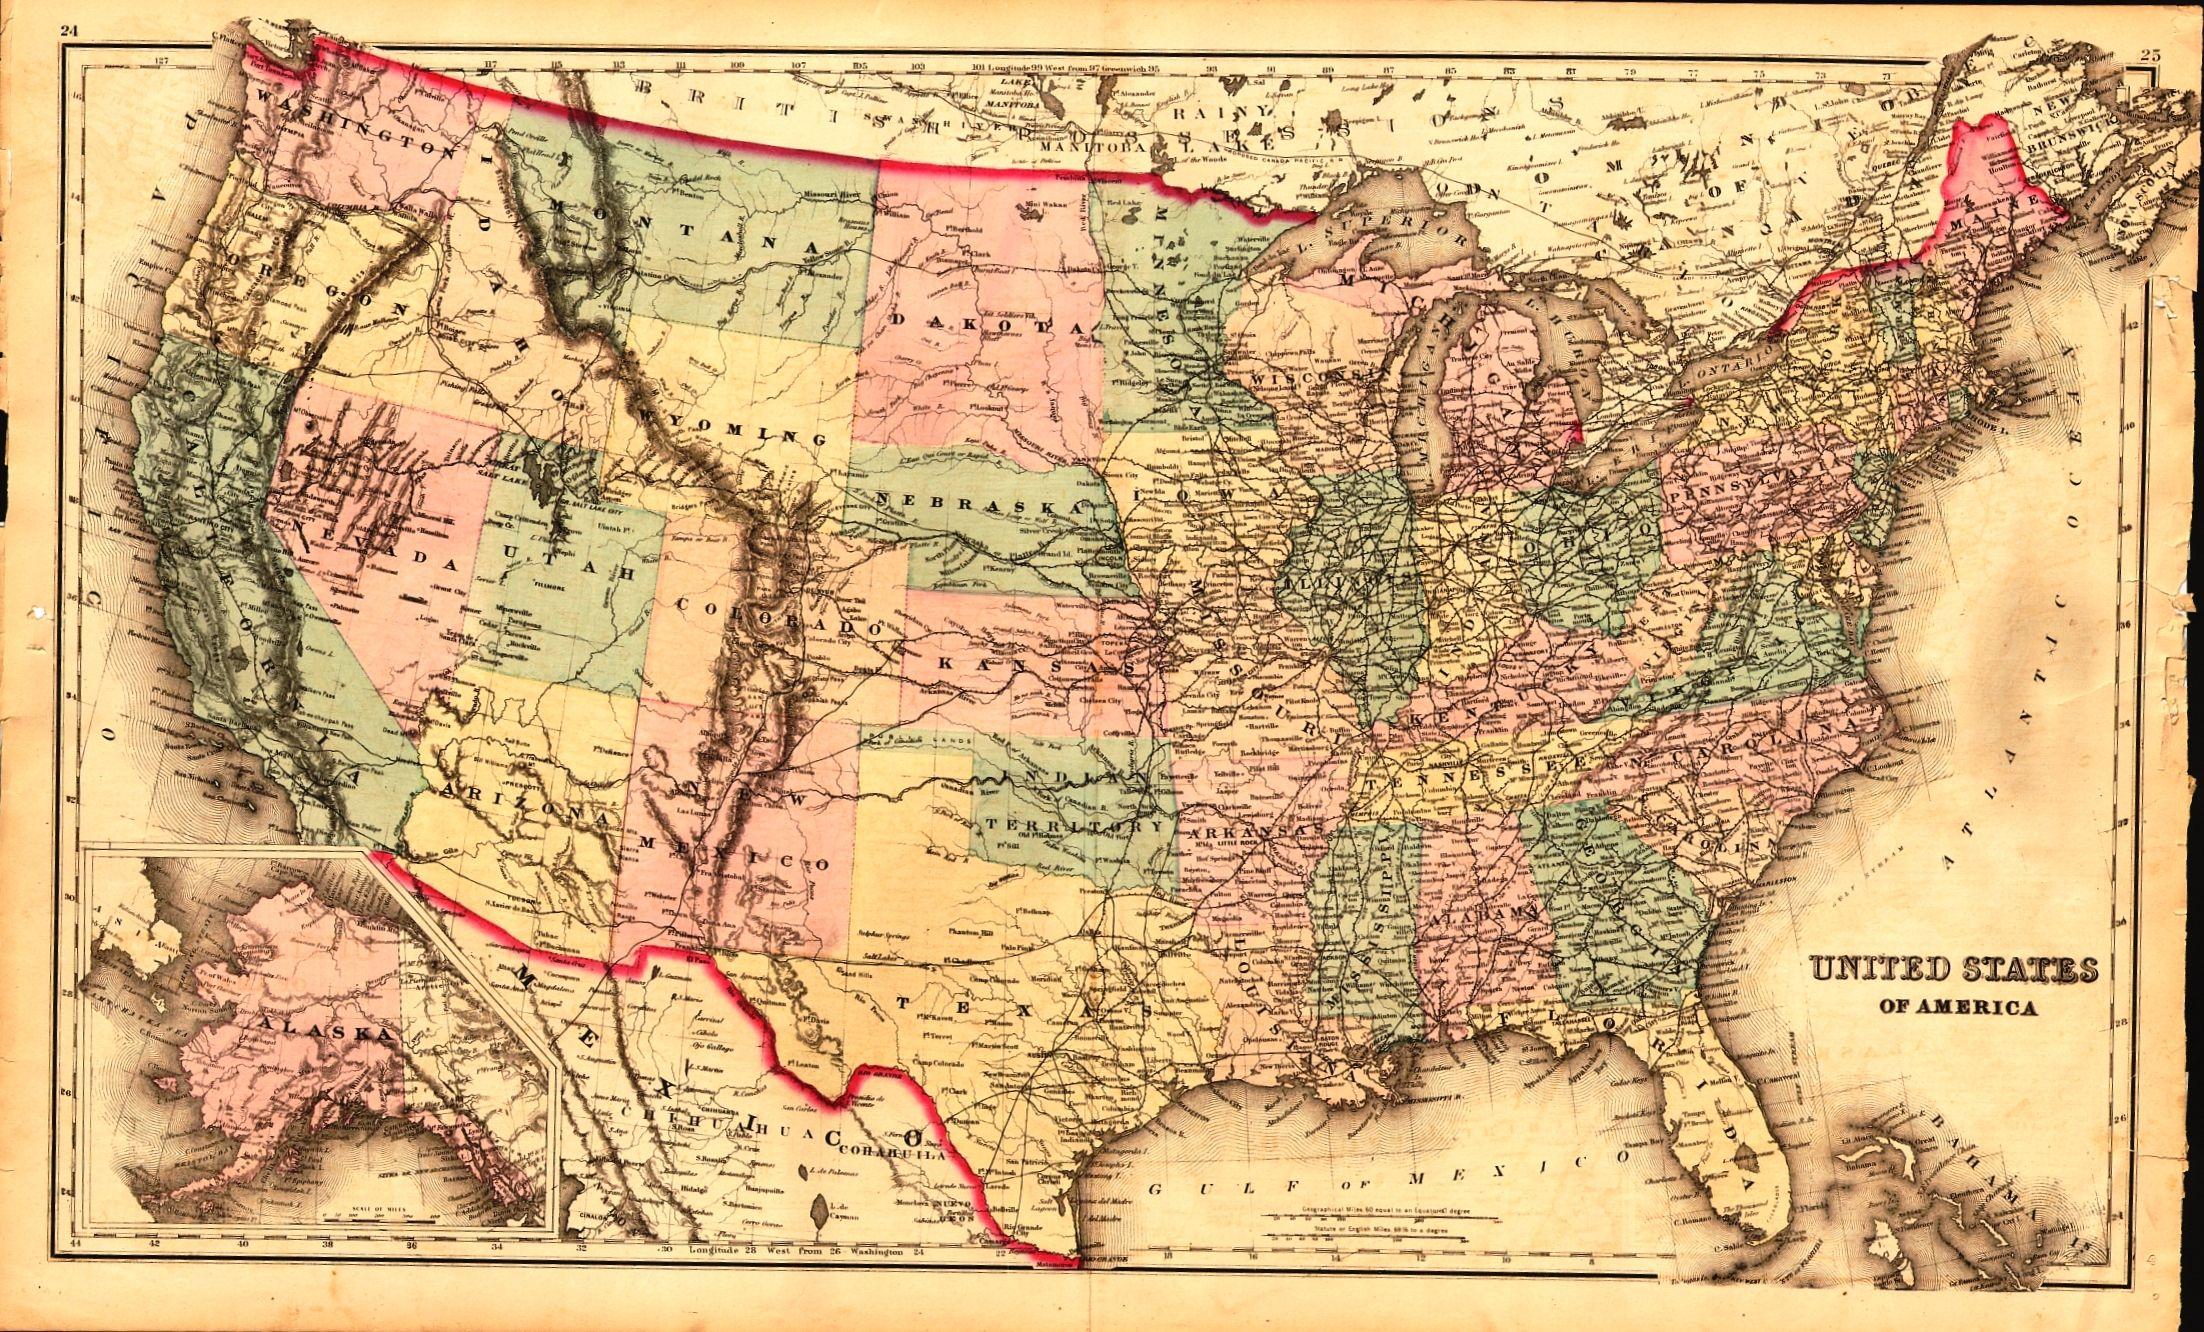 Us Maps Vintage Us Maps Of The World - Usa map vintage